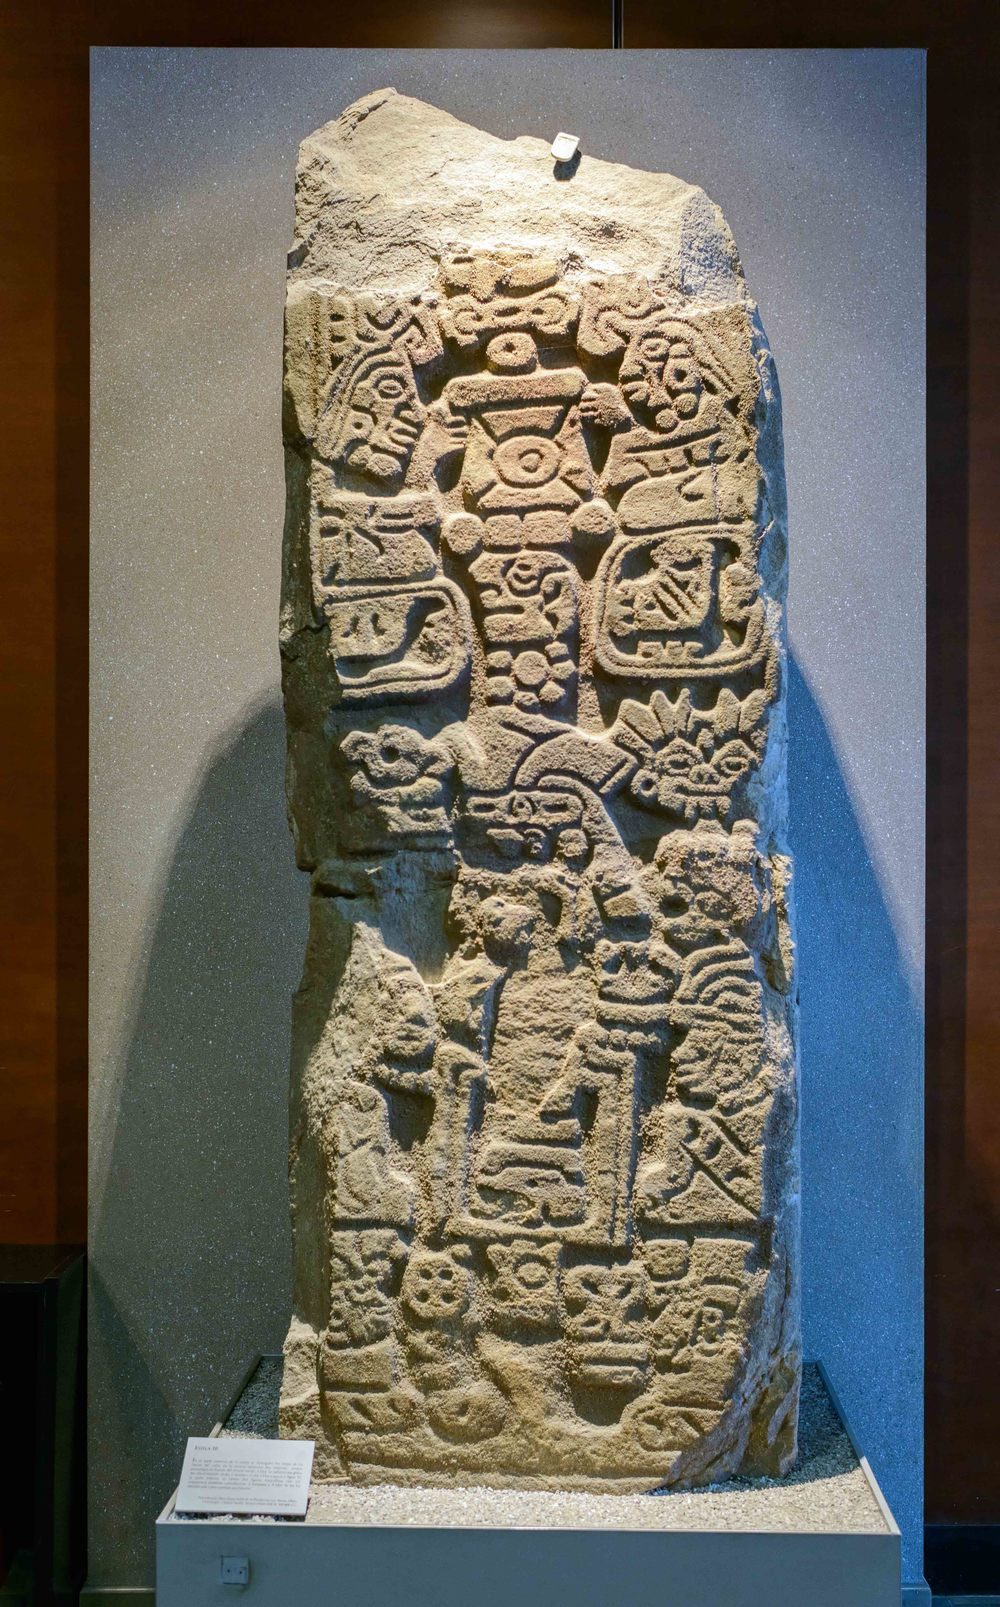 Stele 10, Wall basal north of the south platform, Monte Alban, Mexico.